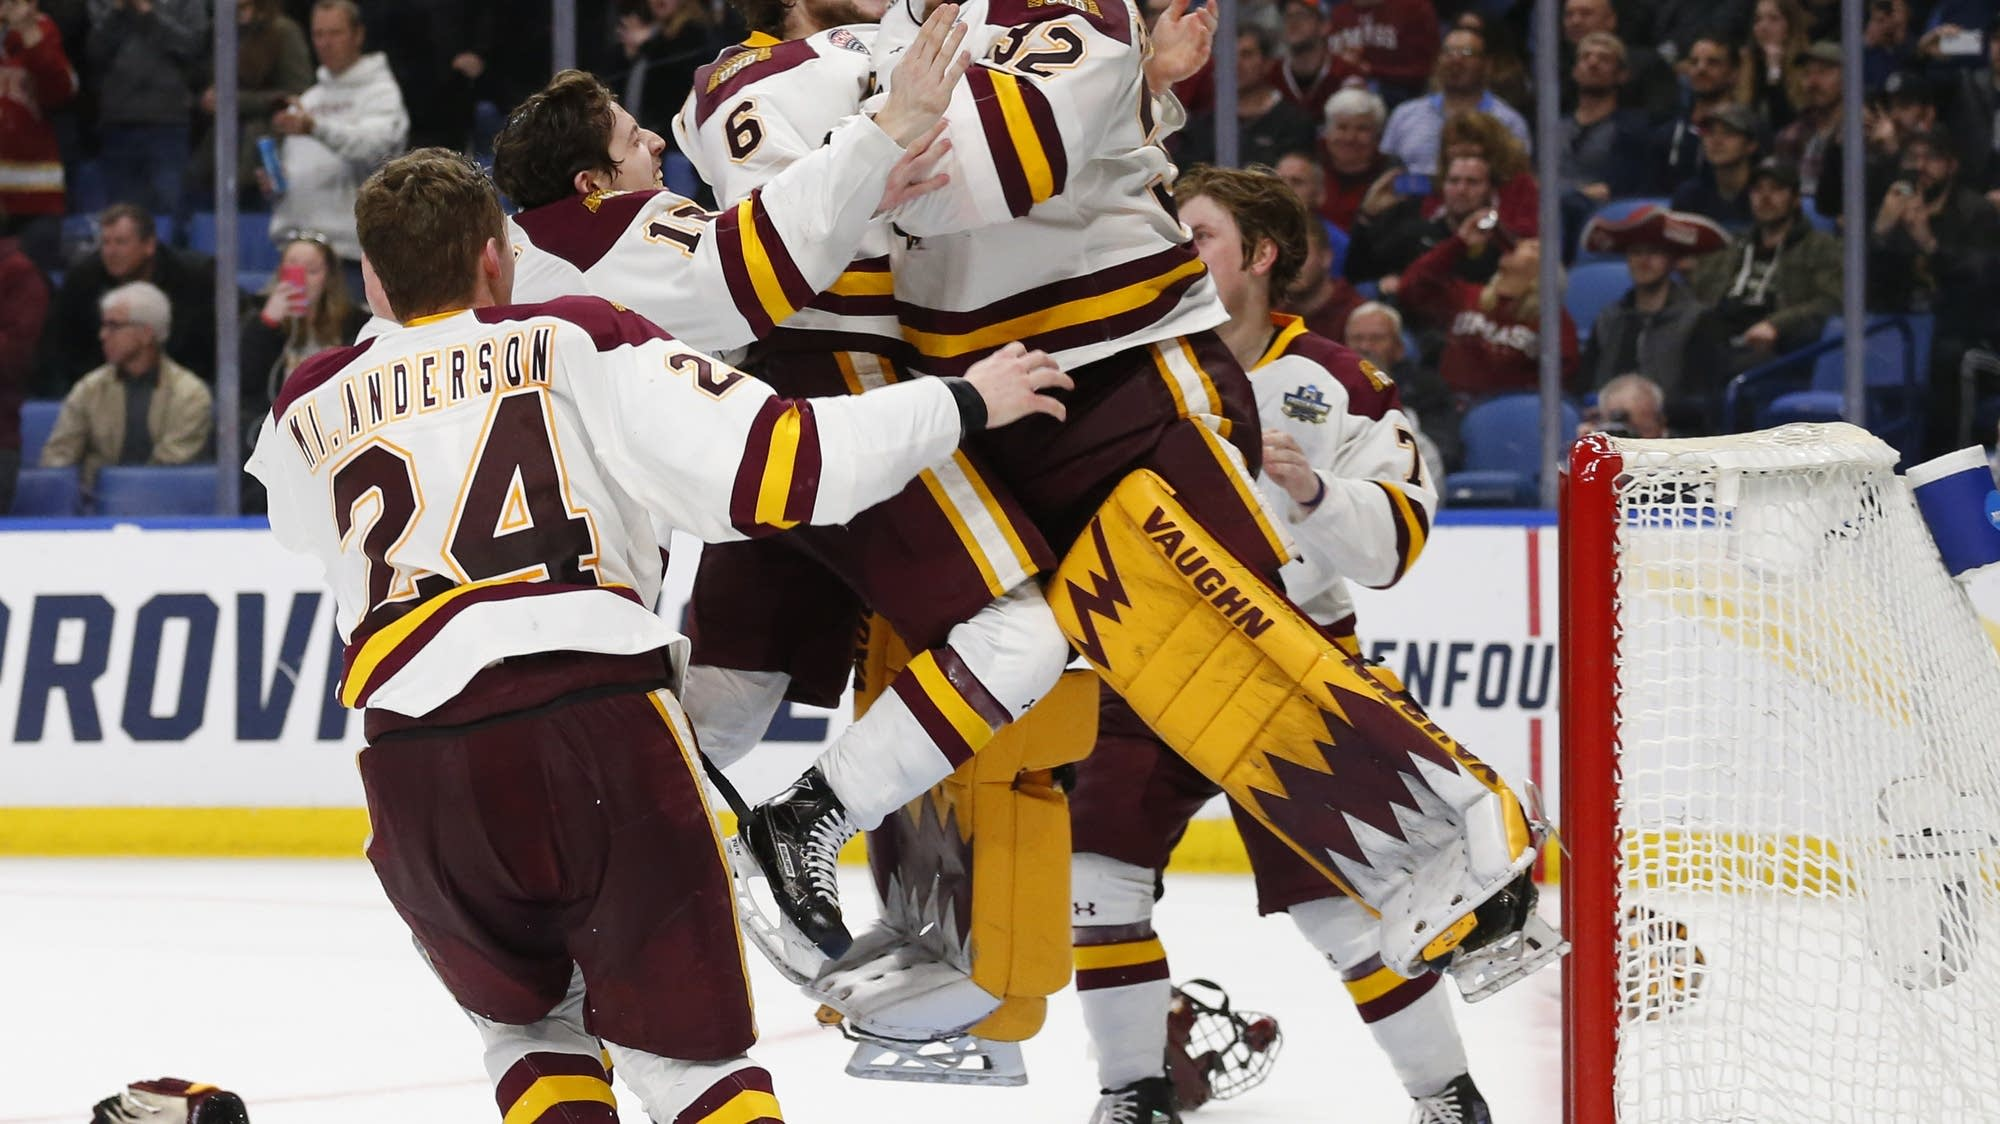 College Men S Hockey Minnesota Duluth Wins Second Straight Title